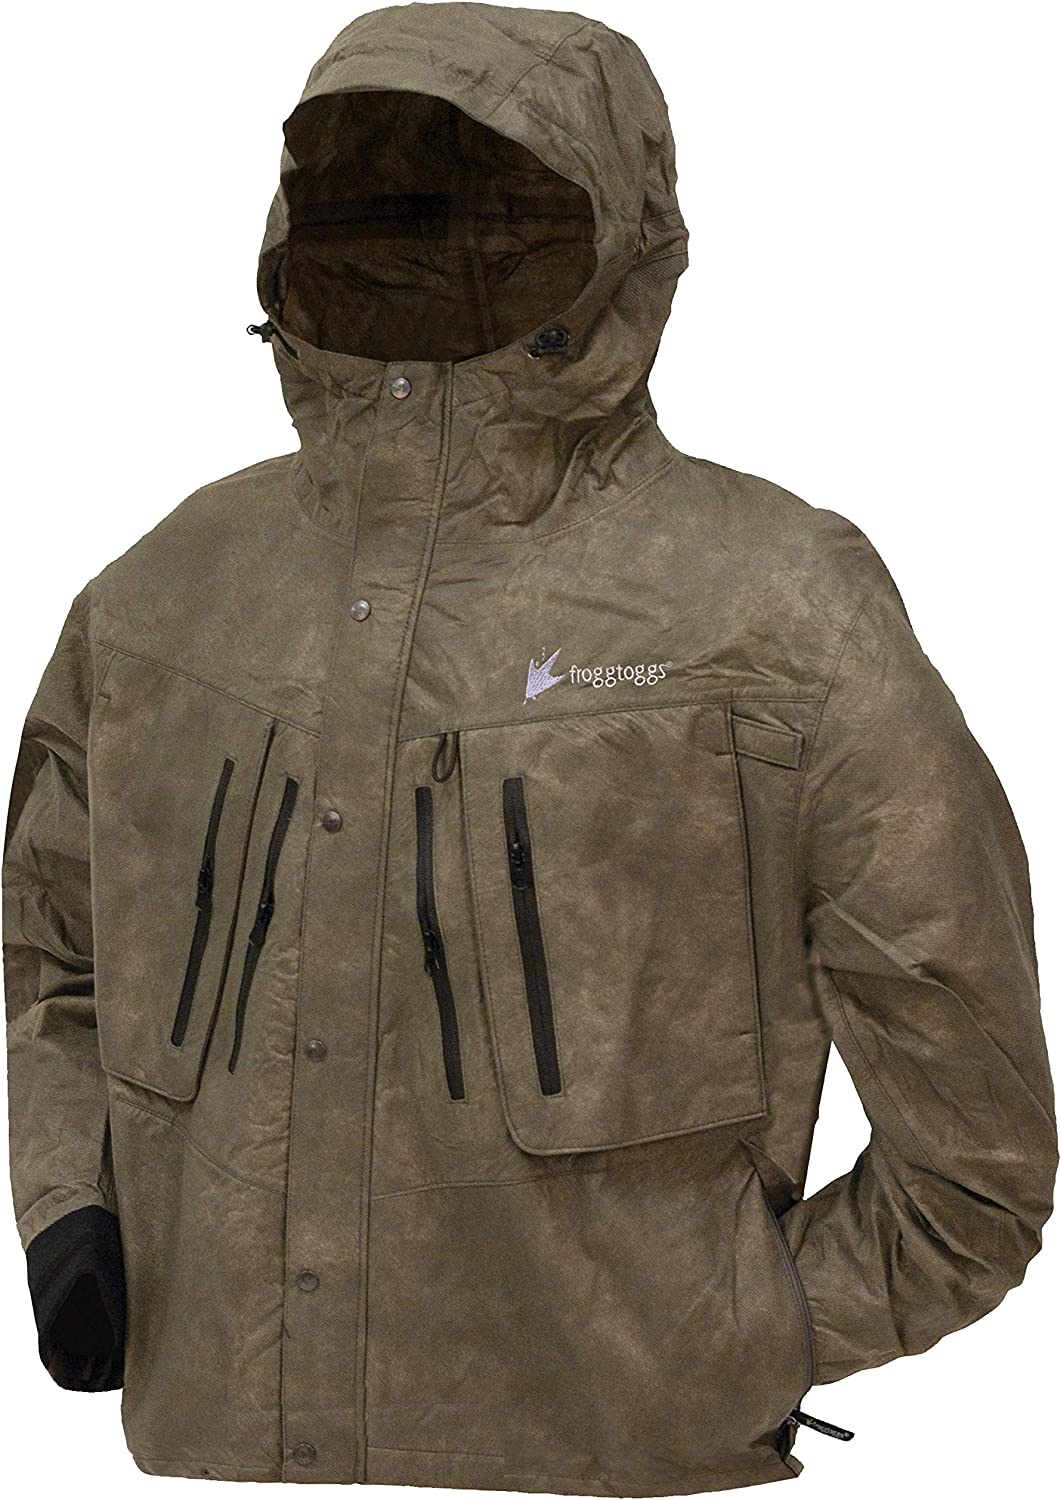 FROGG TOGGS Tekk Toad Breathable Wading Rain Fixed price for sale Jacket Ranking TOP19